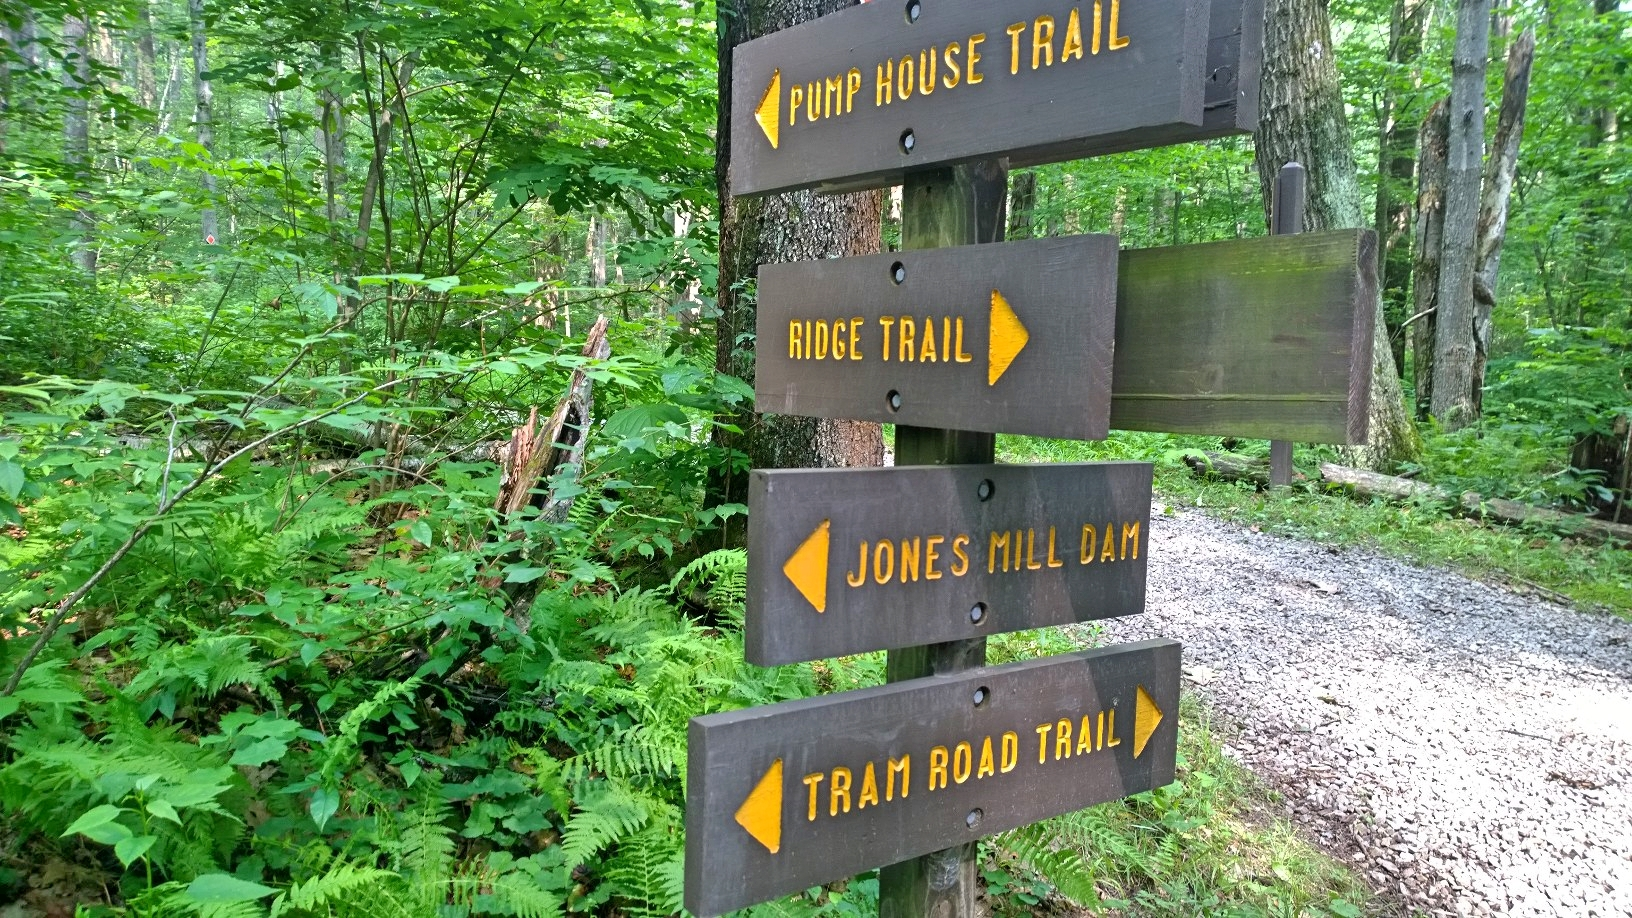 Just like you were there: Hiking at Laurel Hill State Park - Mandy Yokim